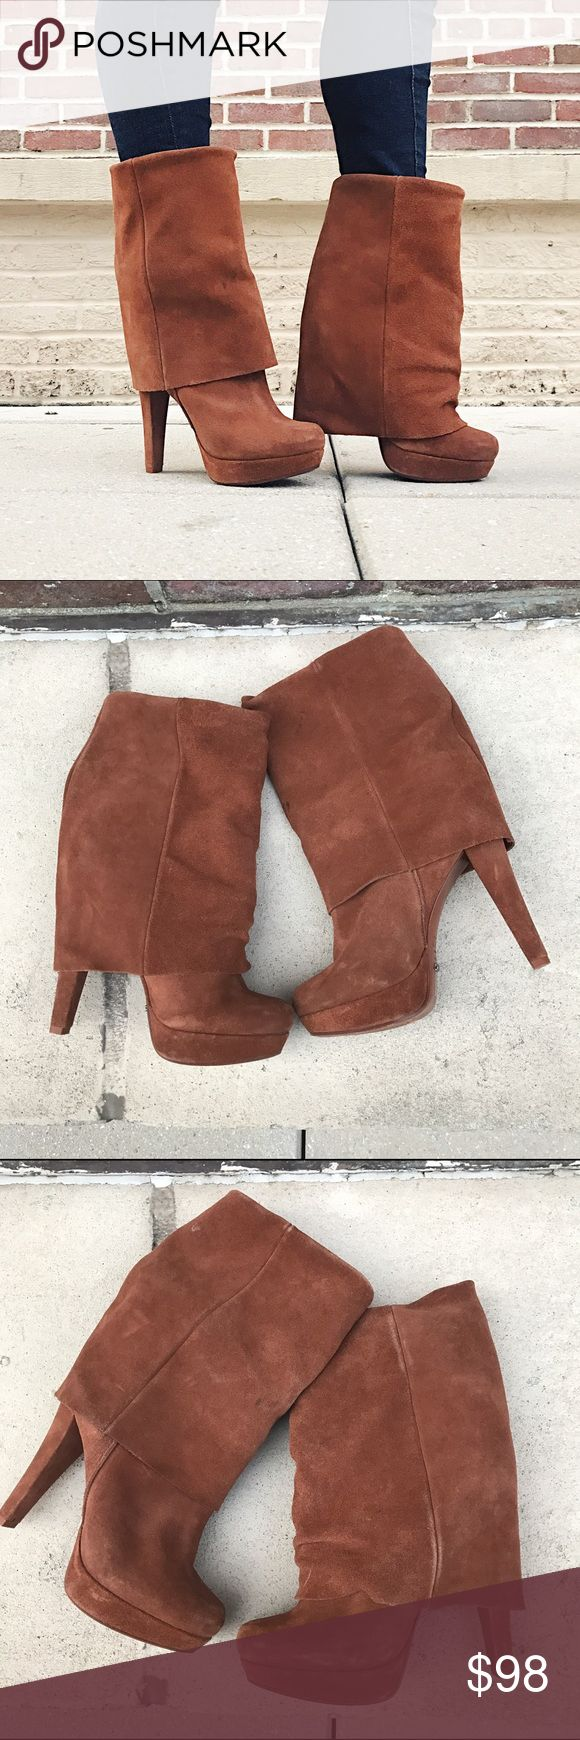 """SCHUTZ Fold Over Boots SCHUTZ Fold Over Boots -Size 7/ Euro 38 -Suede Upper/Leather insole. -Heel height: 5"""" -In great condition! Suede shows some signs of wear and a has few tiny spots.  NO Trades. Please make all offers through offer button. SCHUTZ Shoes Ankle Boots & Booties"""